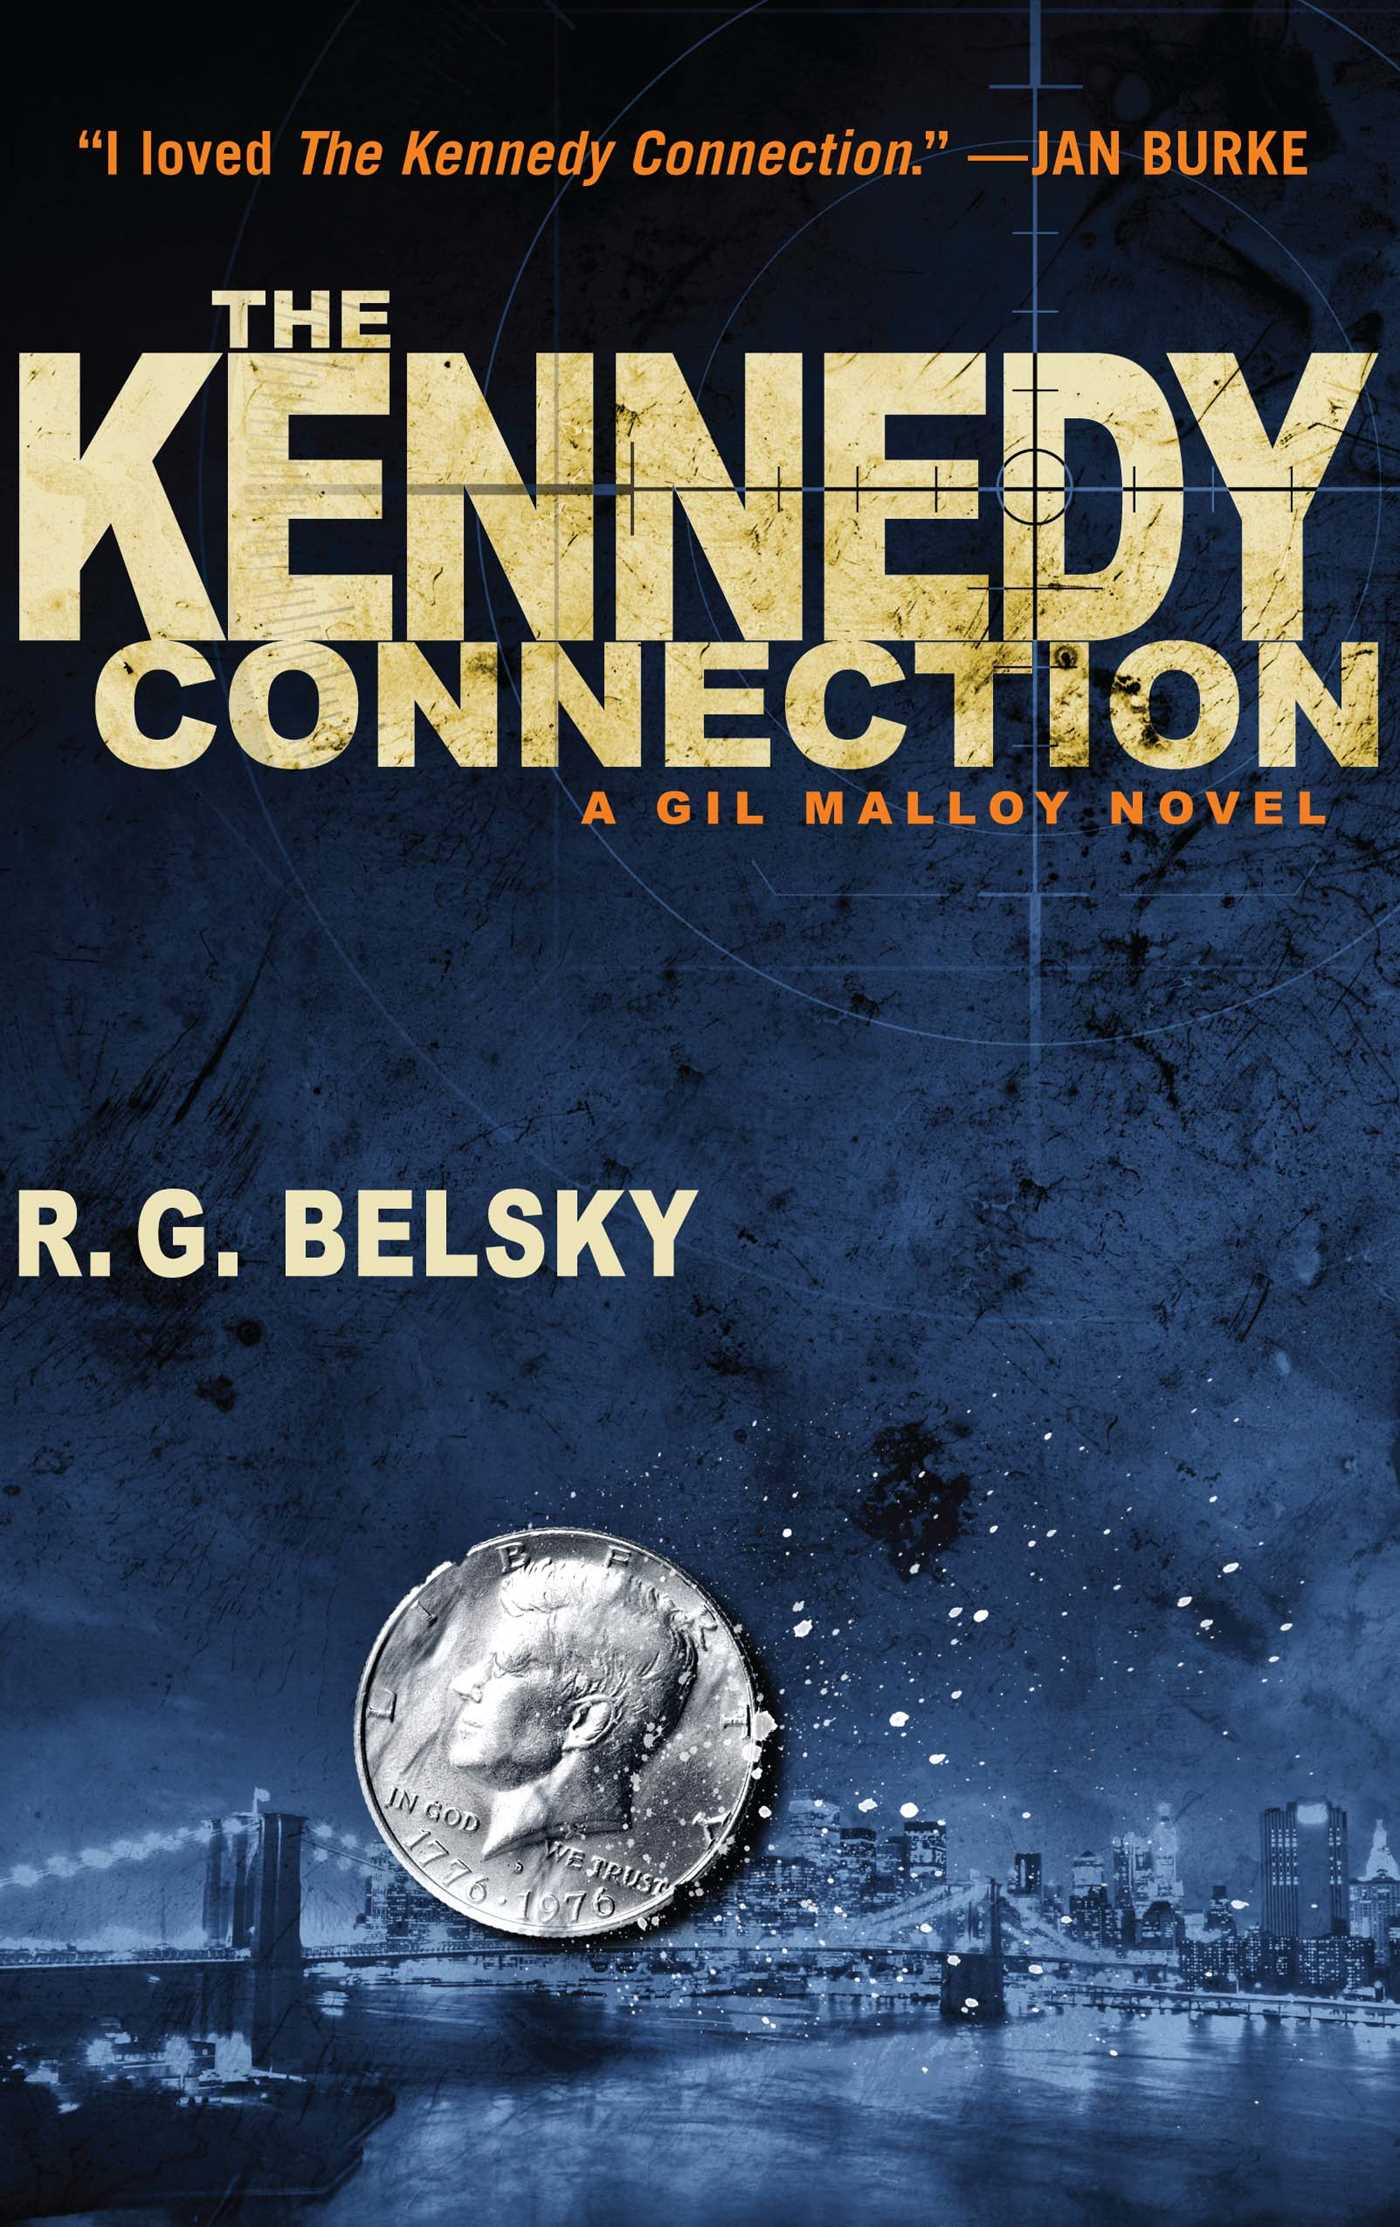 Kennedy-connection-9781476762326_hr